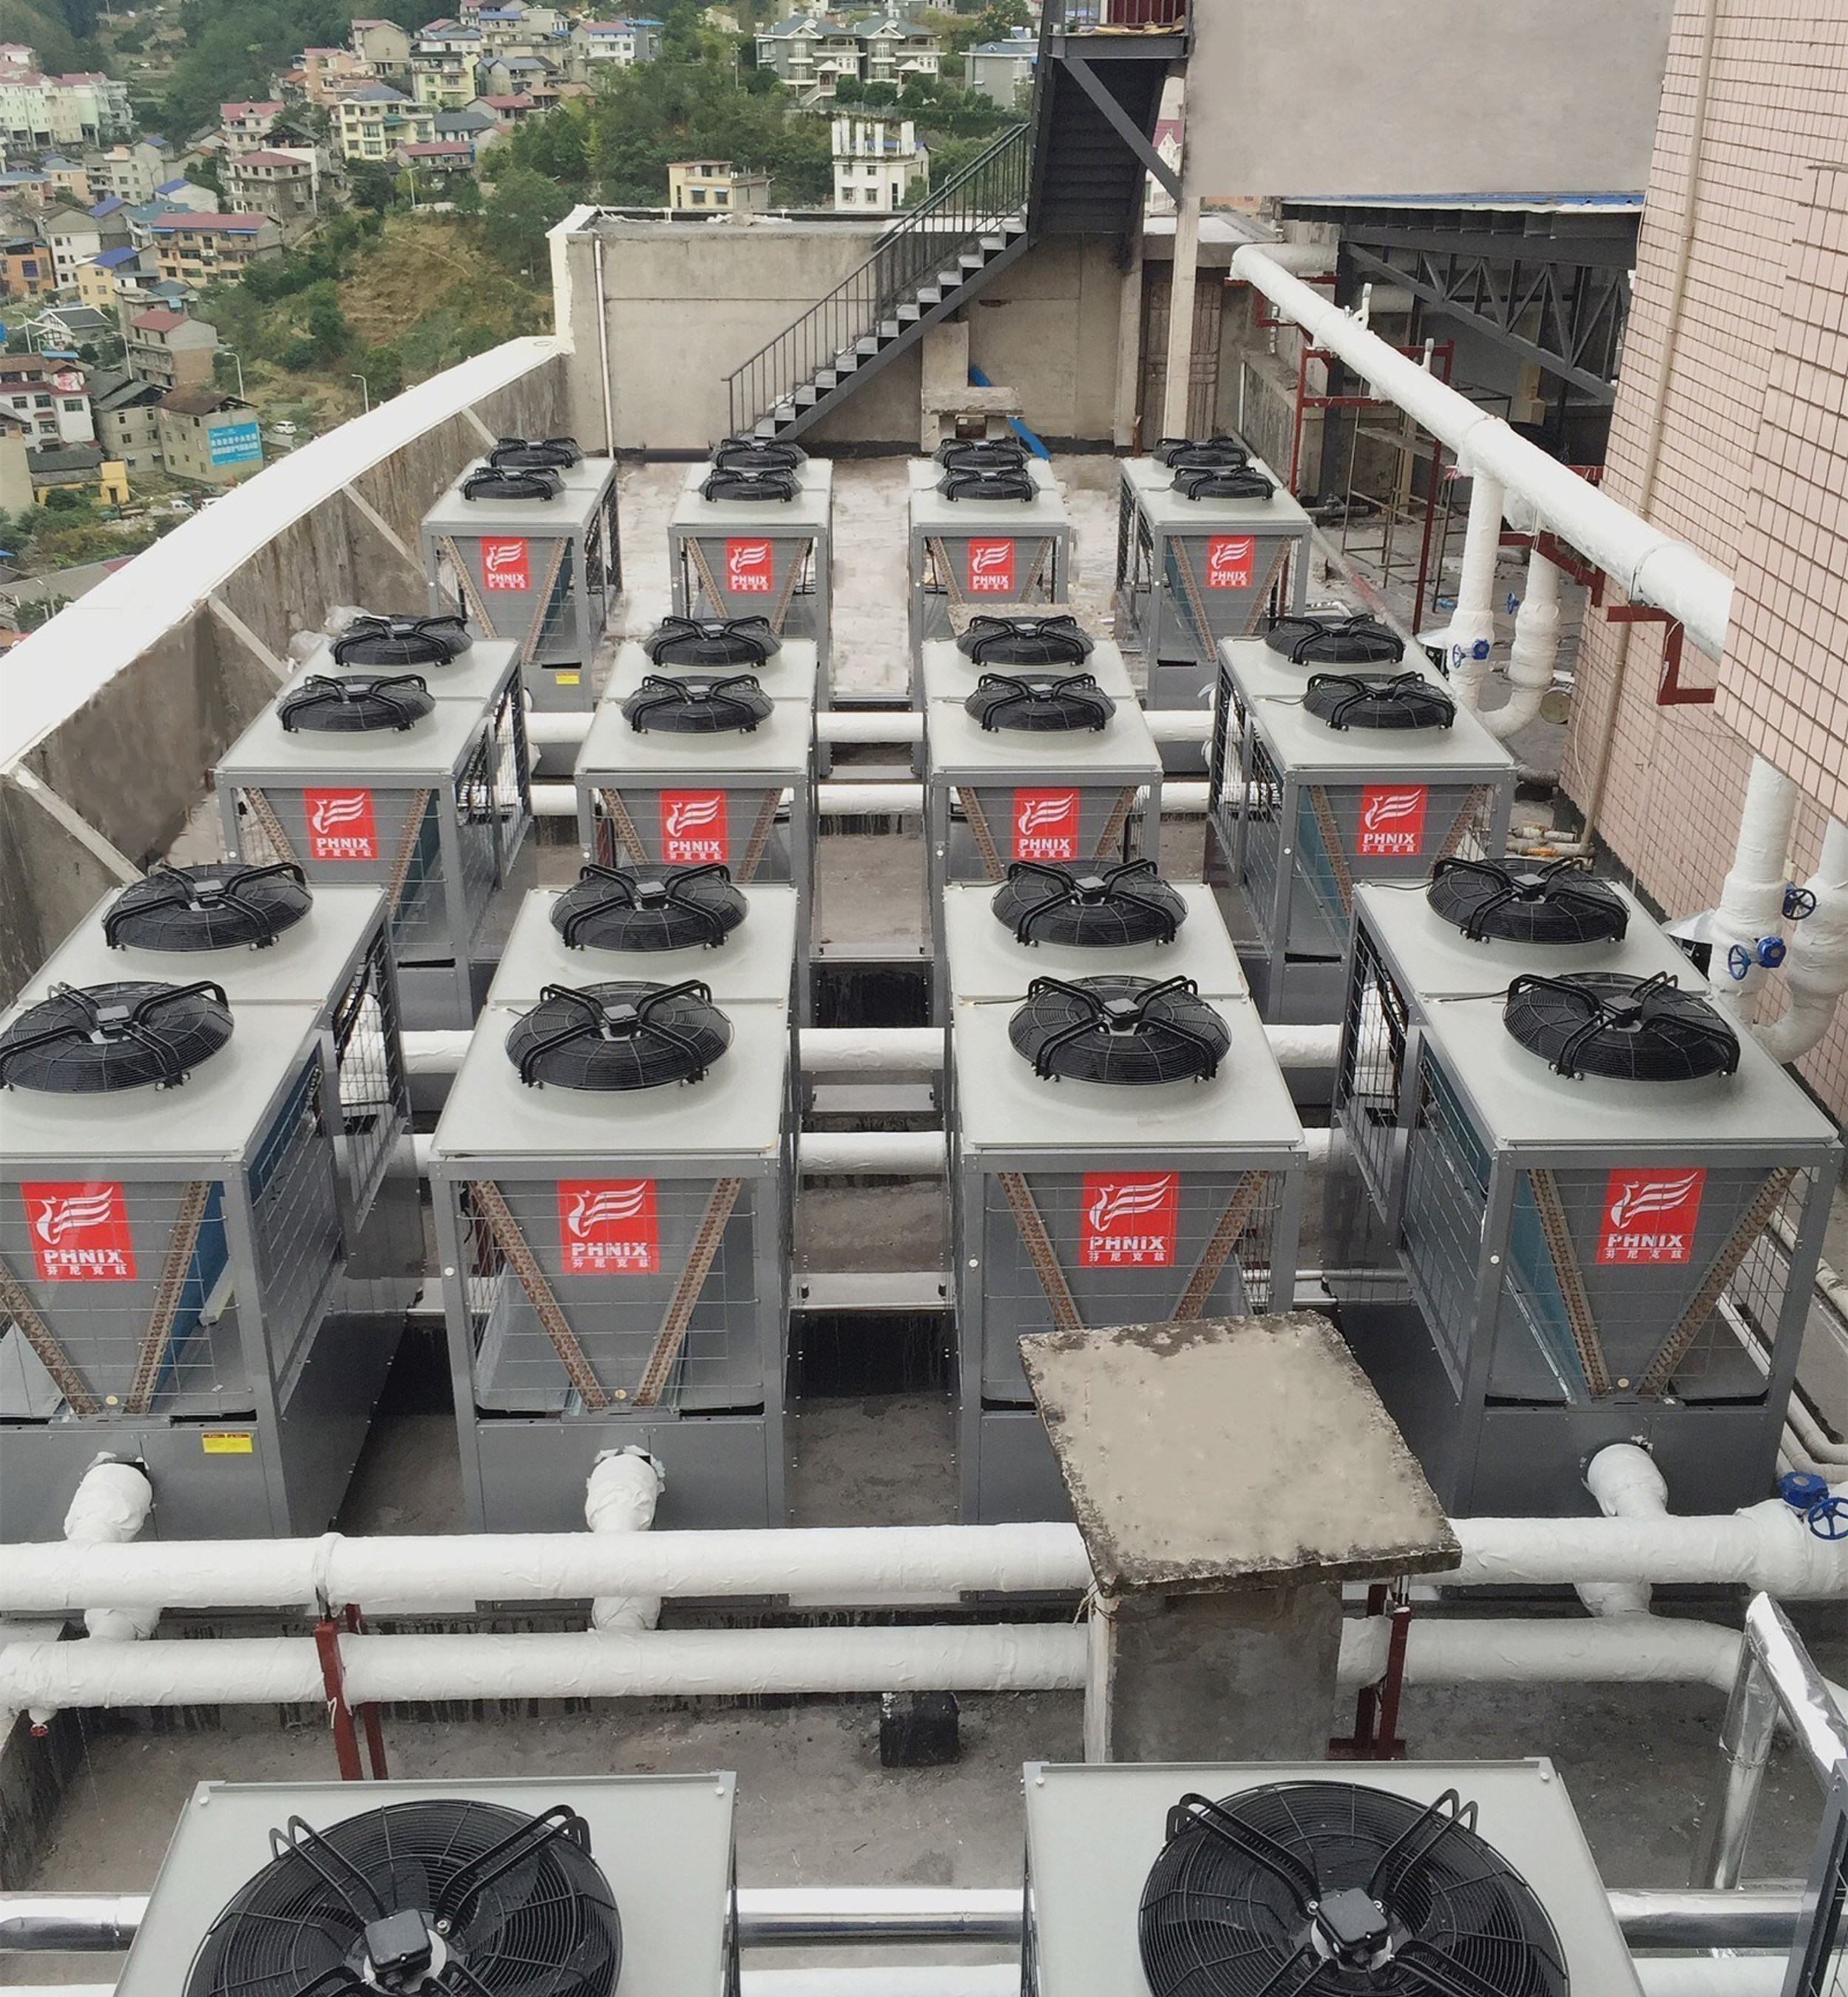 The picture shows one of the PHNIX heat pump applications in a Coal-to-Electricity project.